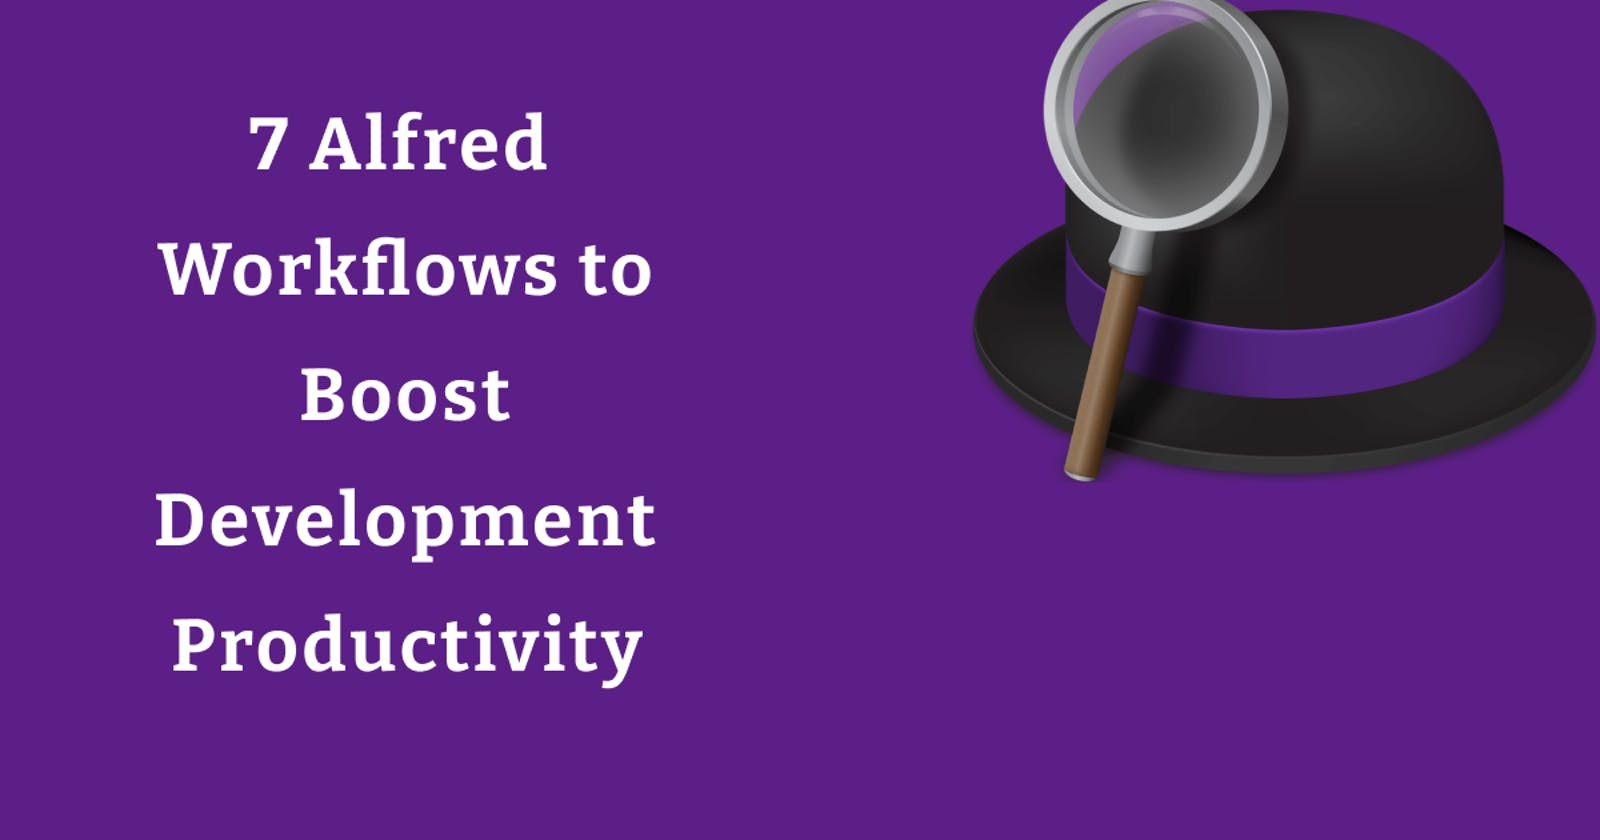 7 Alfred Workflows to Boost Development Productivity